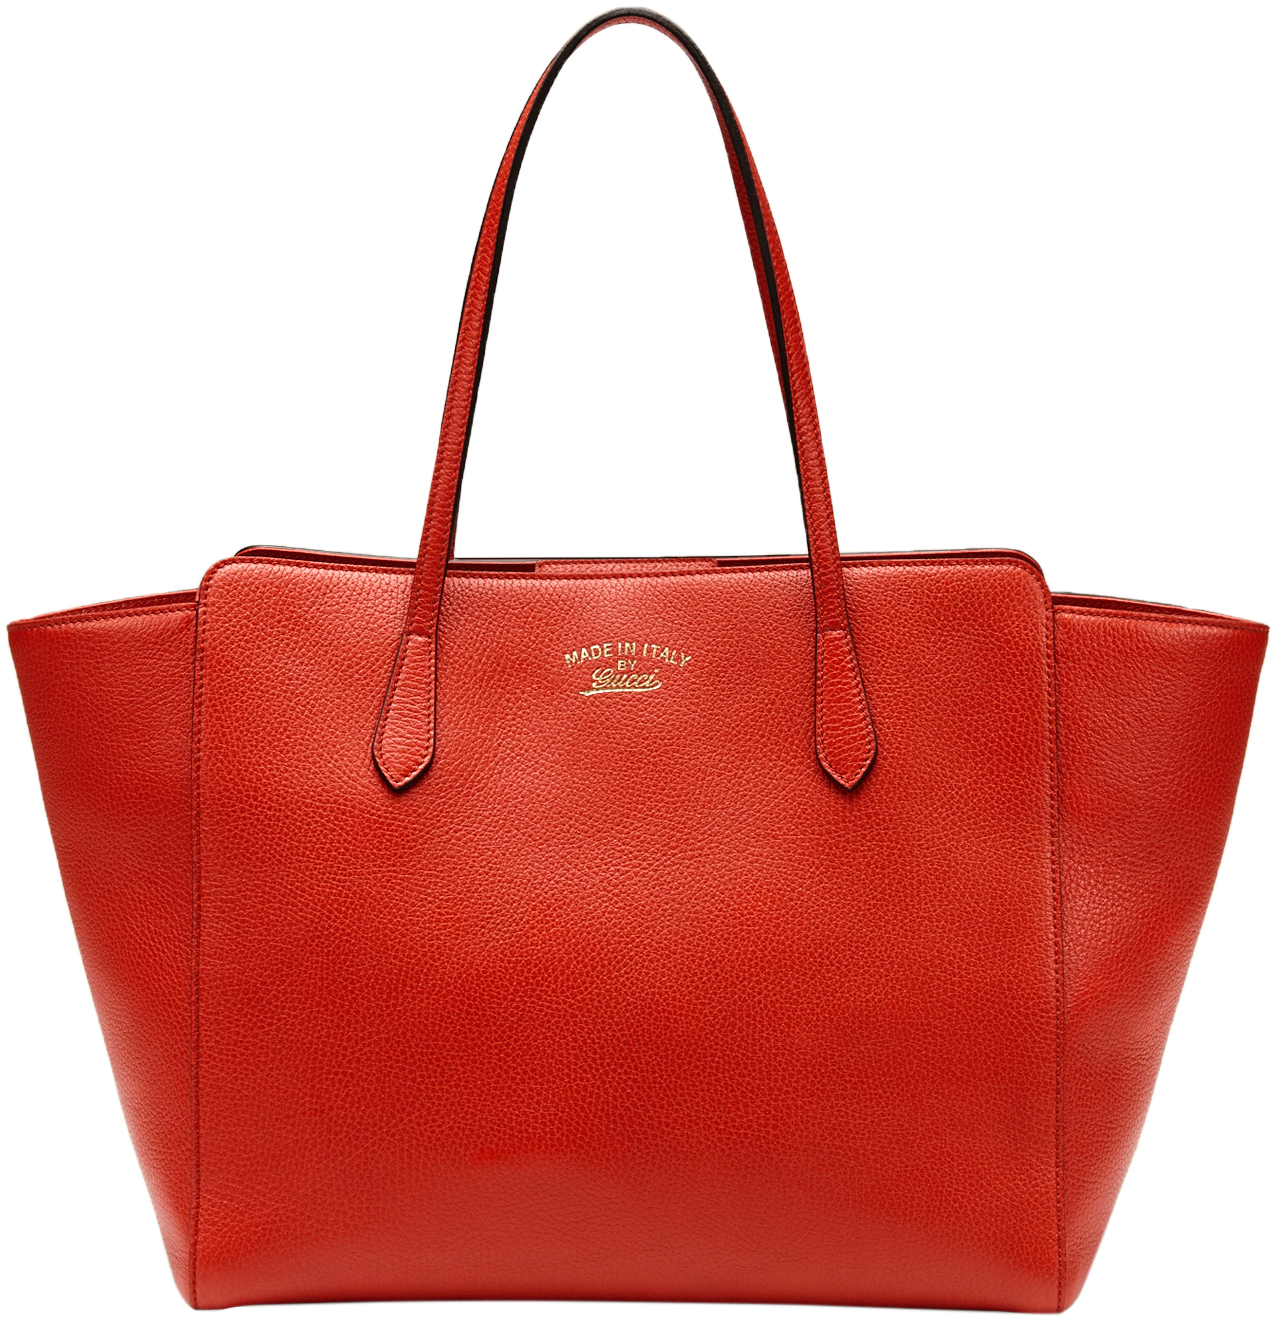 e0402d25e9800e Gucci Red Leather Swing Medium Tote Satchel Bag